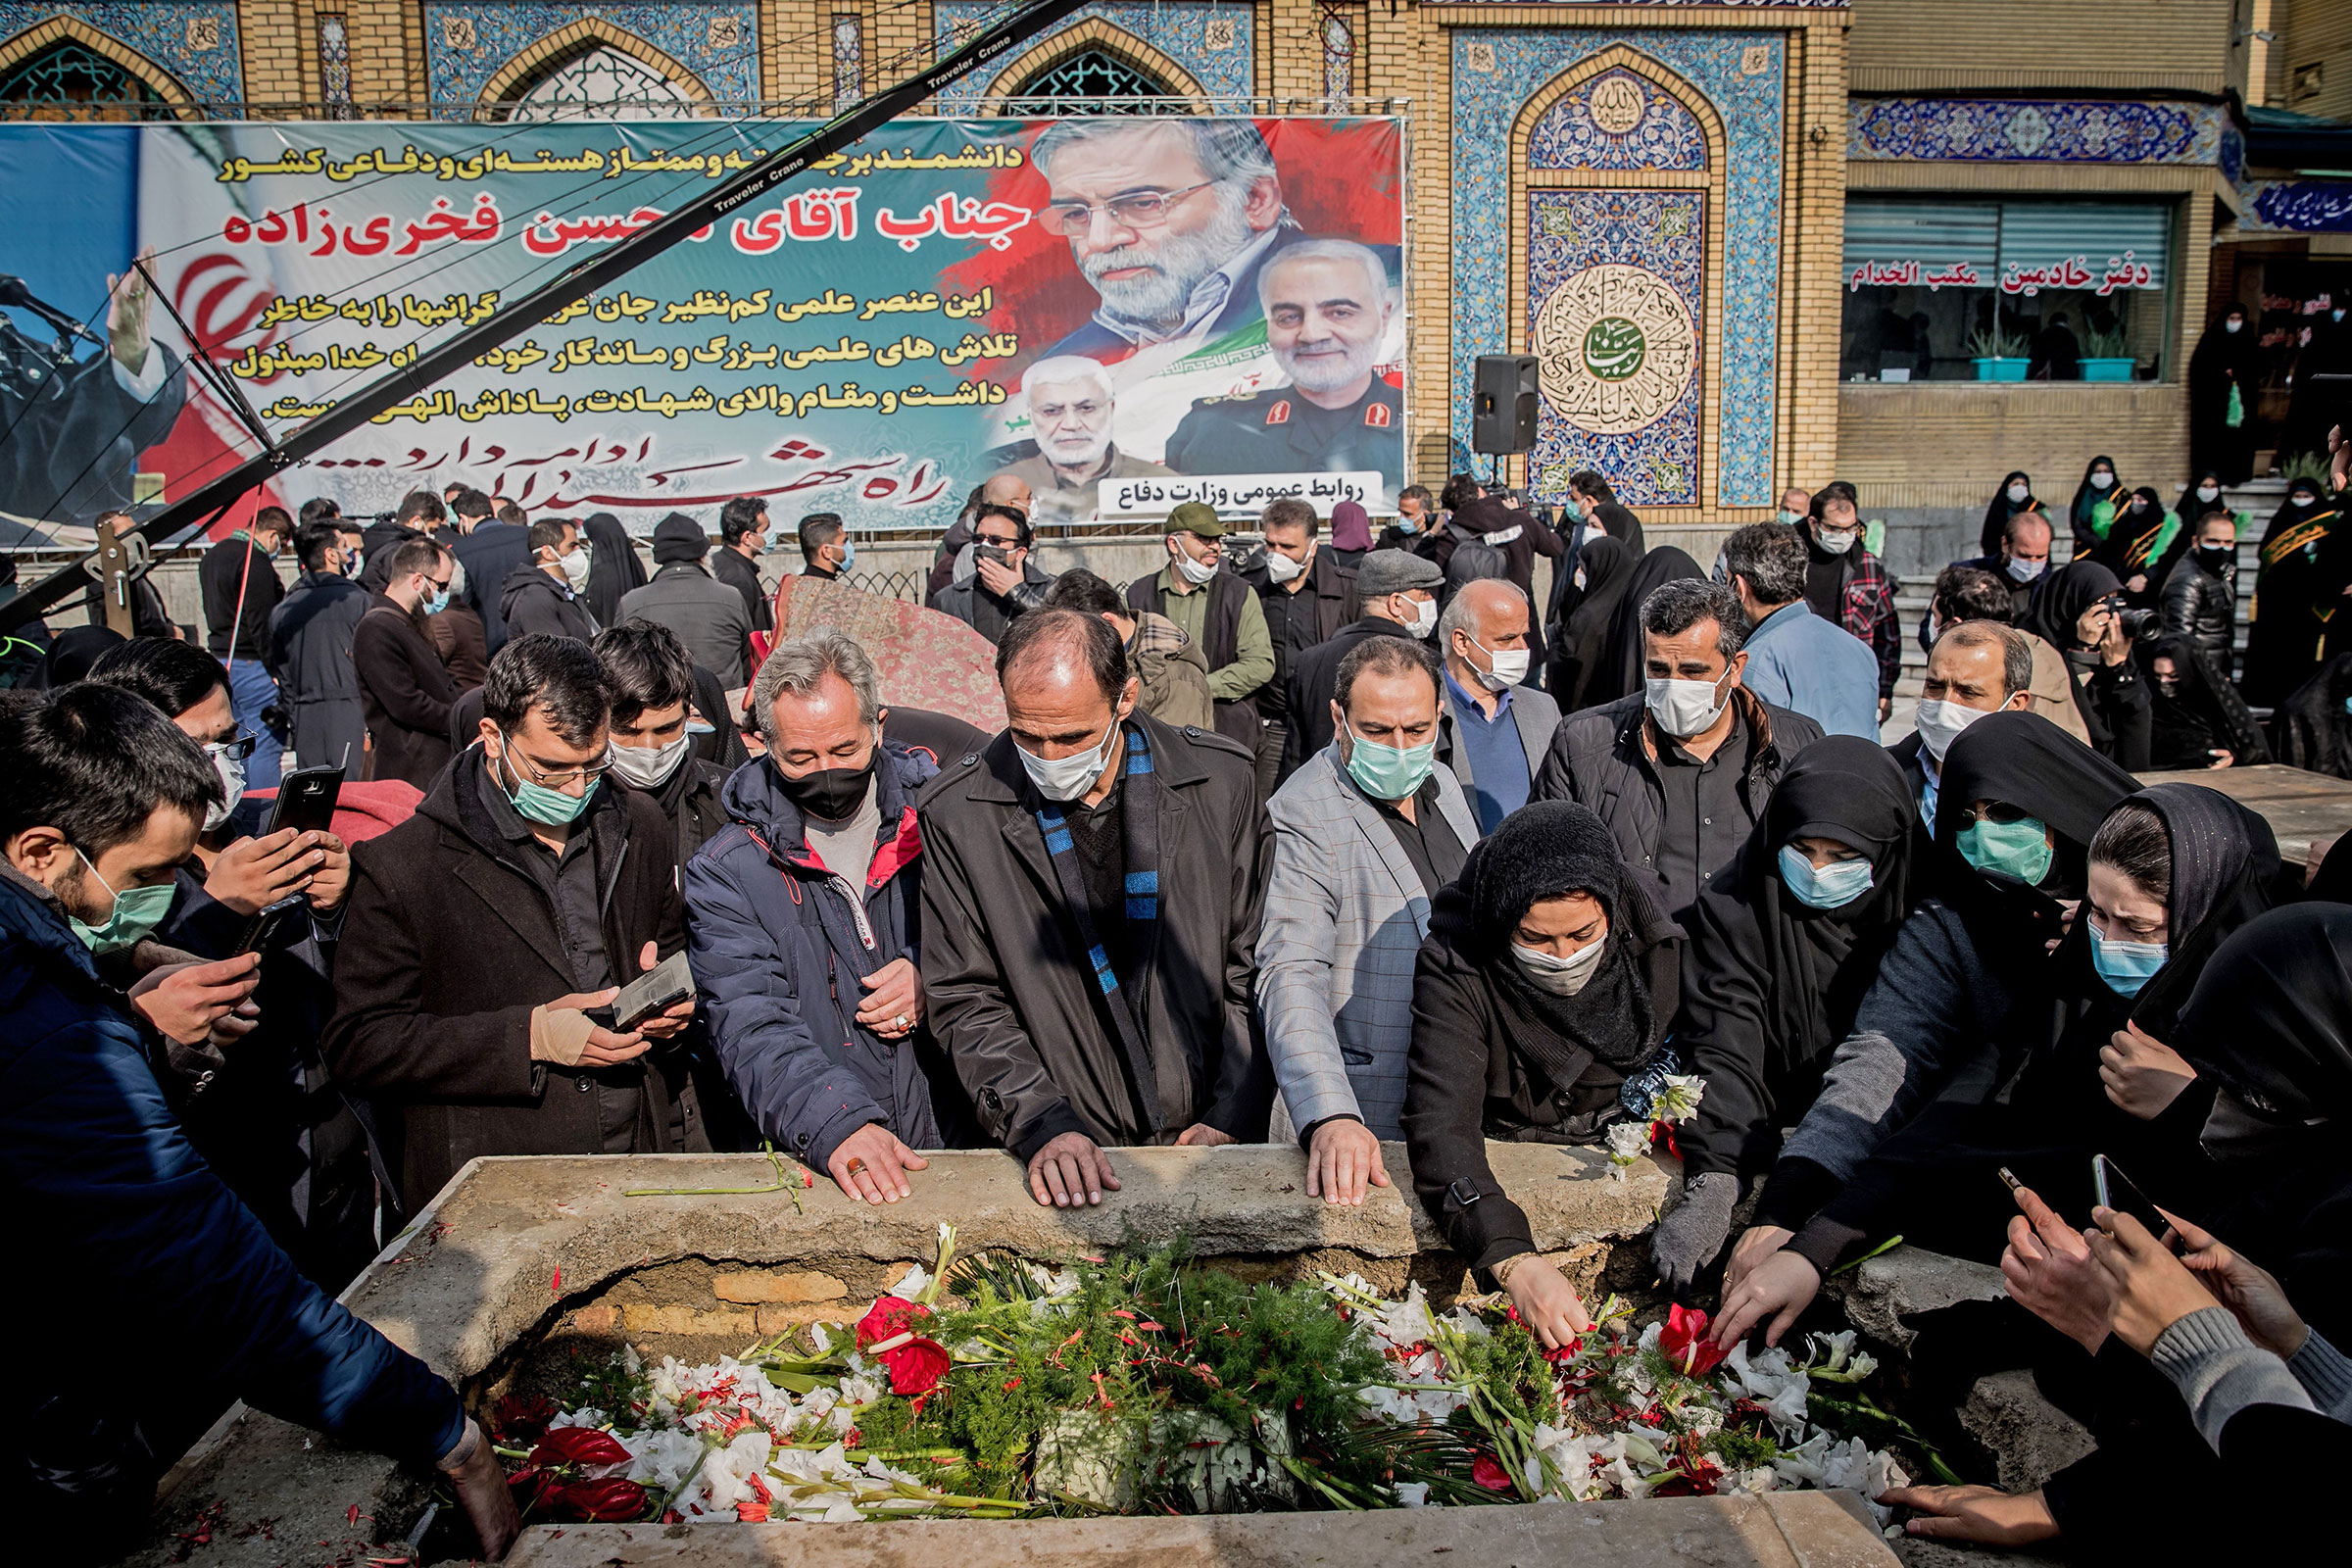 Iranian mourners attend the burial ceremony of slain nuclear scientist Mohsen Fakhrizadeh at Imamzadeh Saleh shrine in northern Tehran, on Nov. 30, 2020.